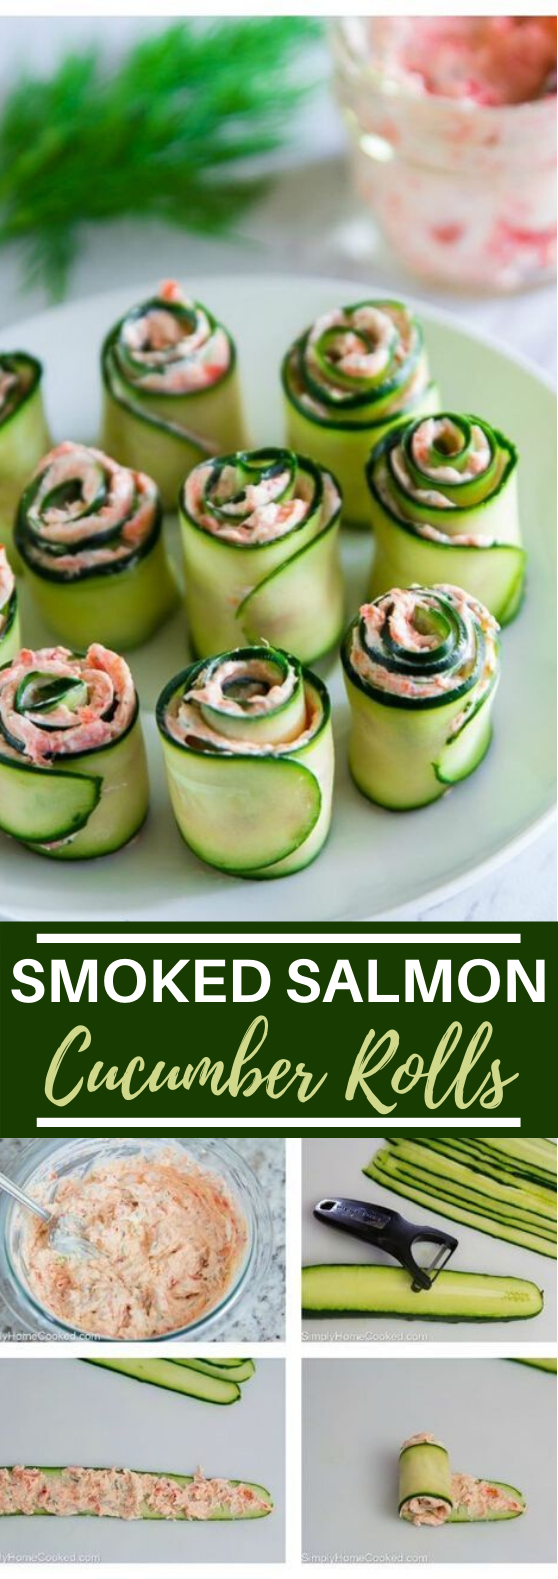 Smoked Salmon Cucumber Appetizer #healthy #appetizers #lowcarb #glutenfree #keto